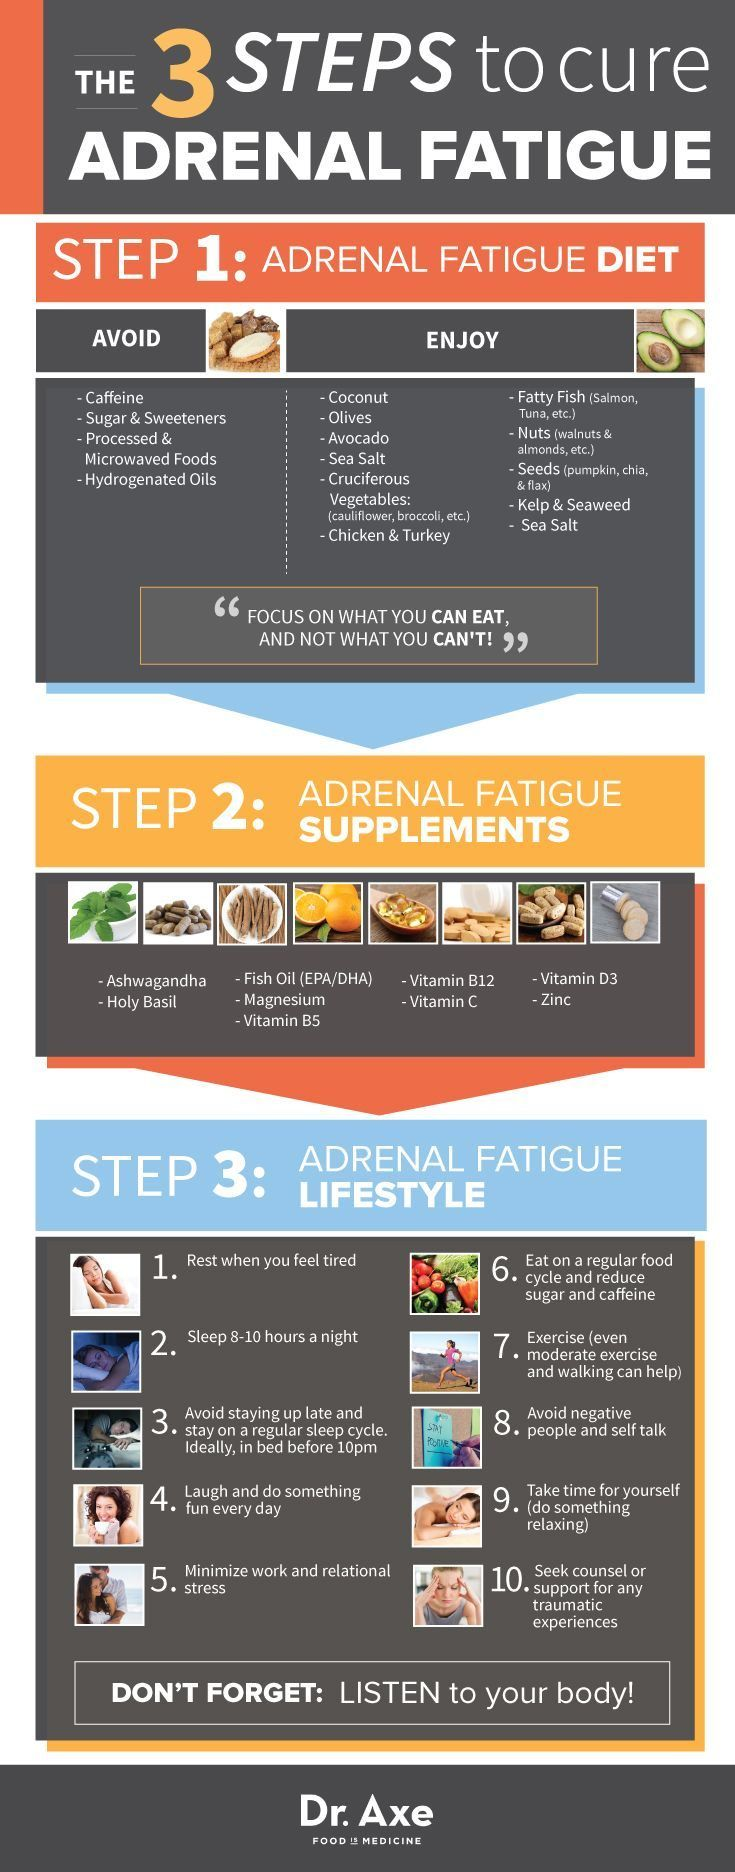 herbs for adrenal fatigue the 3 steps to cure adrenal fatigue infographic step health. Black Bedroom Furniture Sets. Home Design Ideas